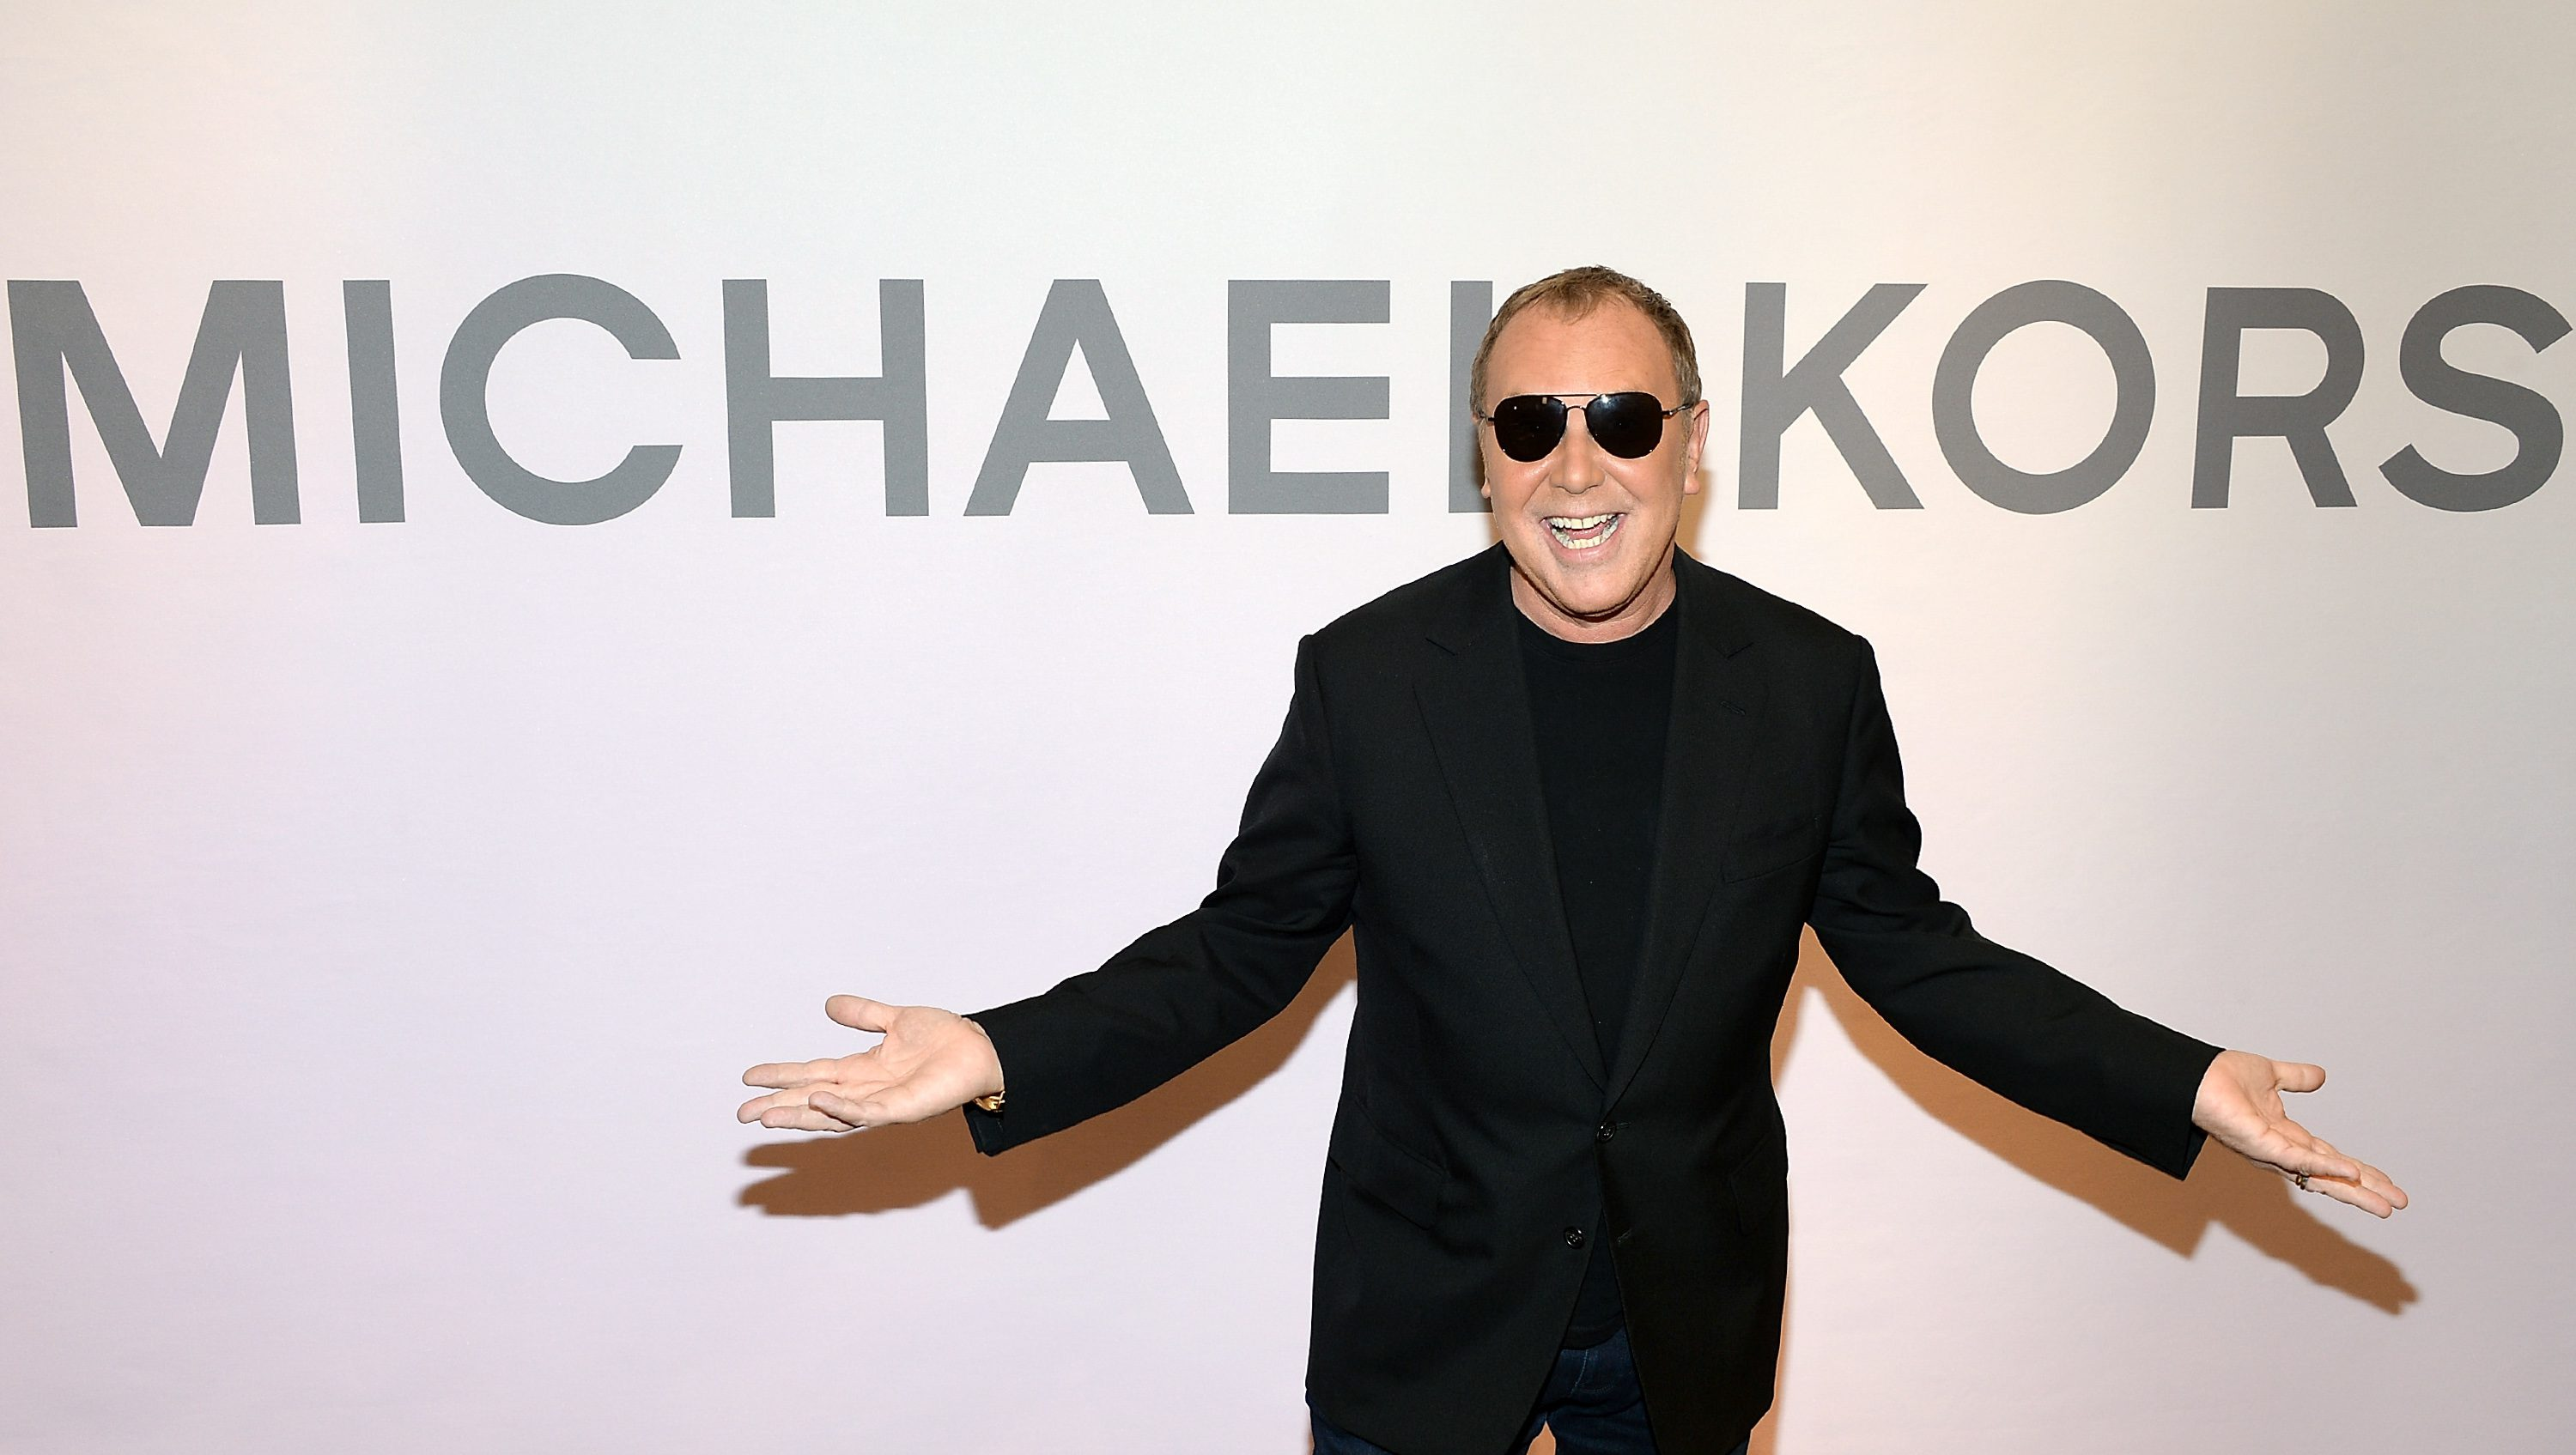 Designer Michael Kors attends the Miranda Eyewear Collection launch event at his SoHo Flagship store, on Wednesday, Feb. 18, 2015, in New York. (Photo by Evan Agostini/Invision/AP)